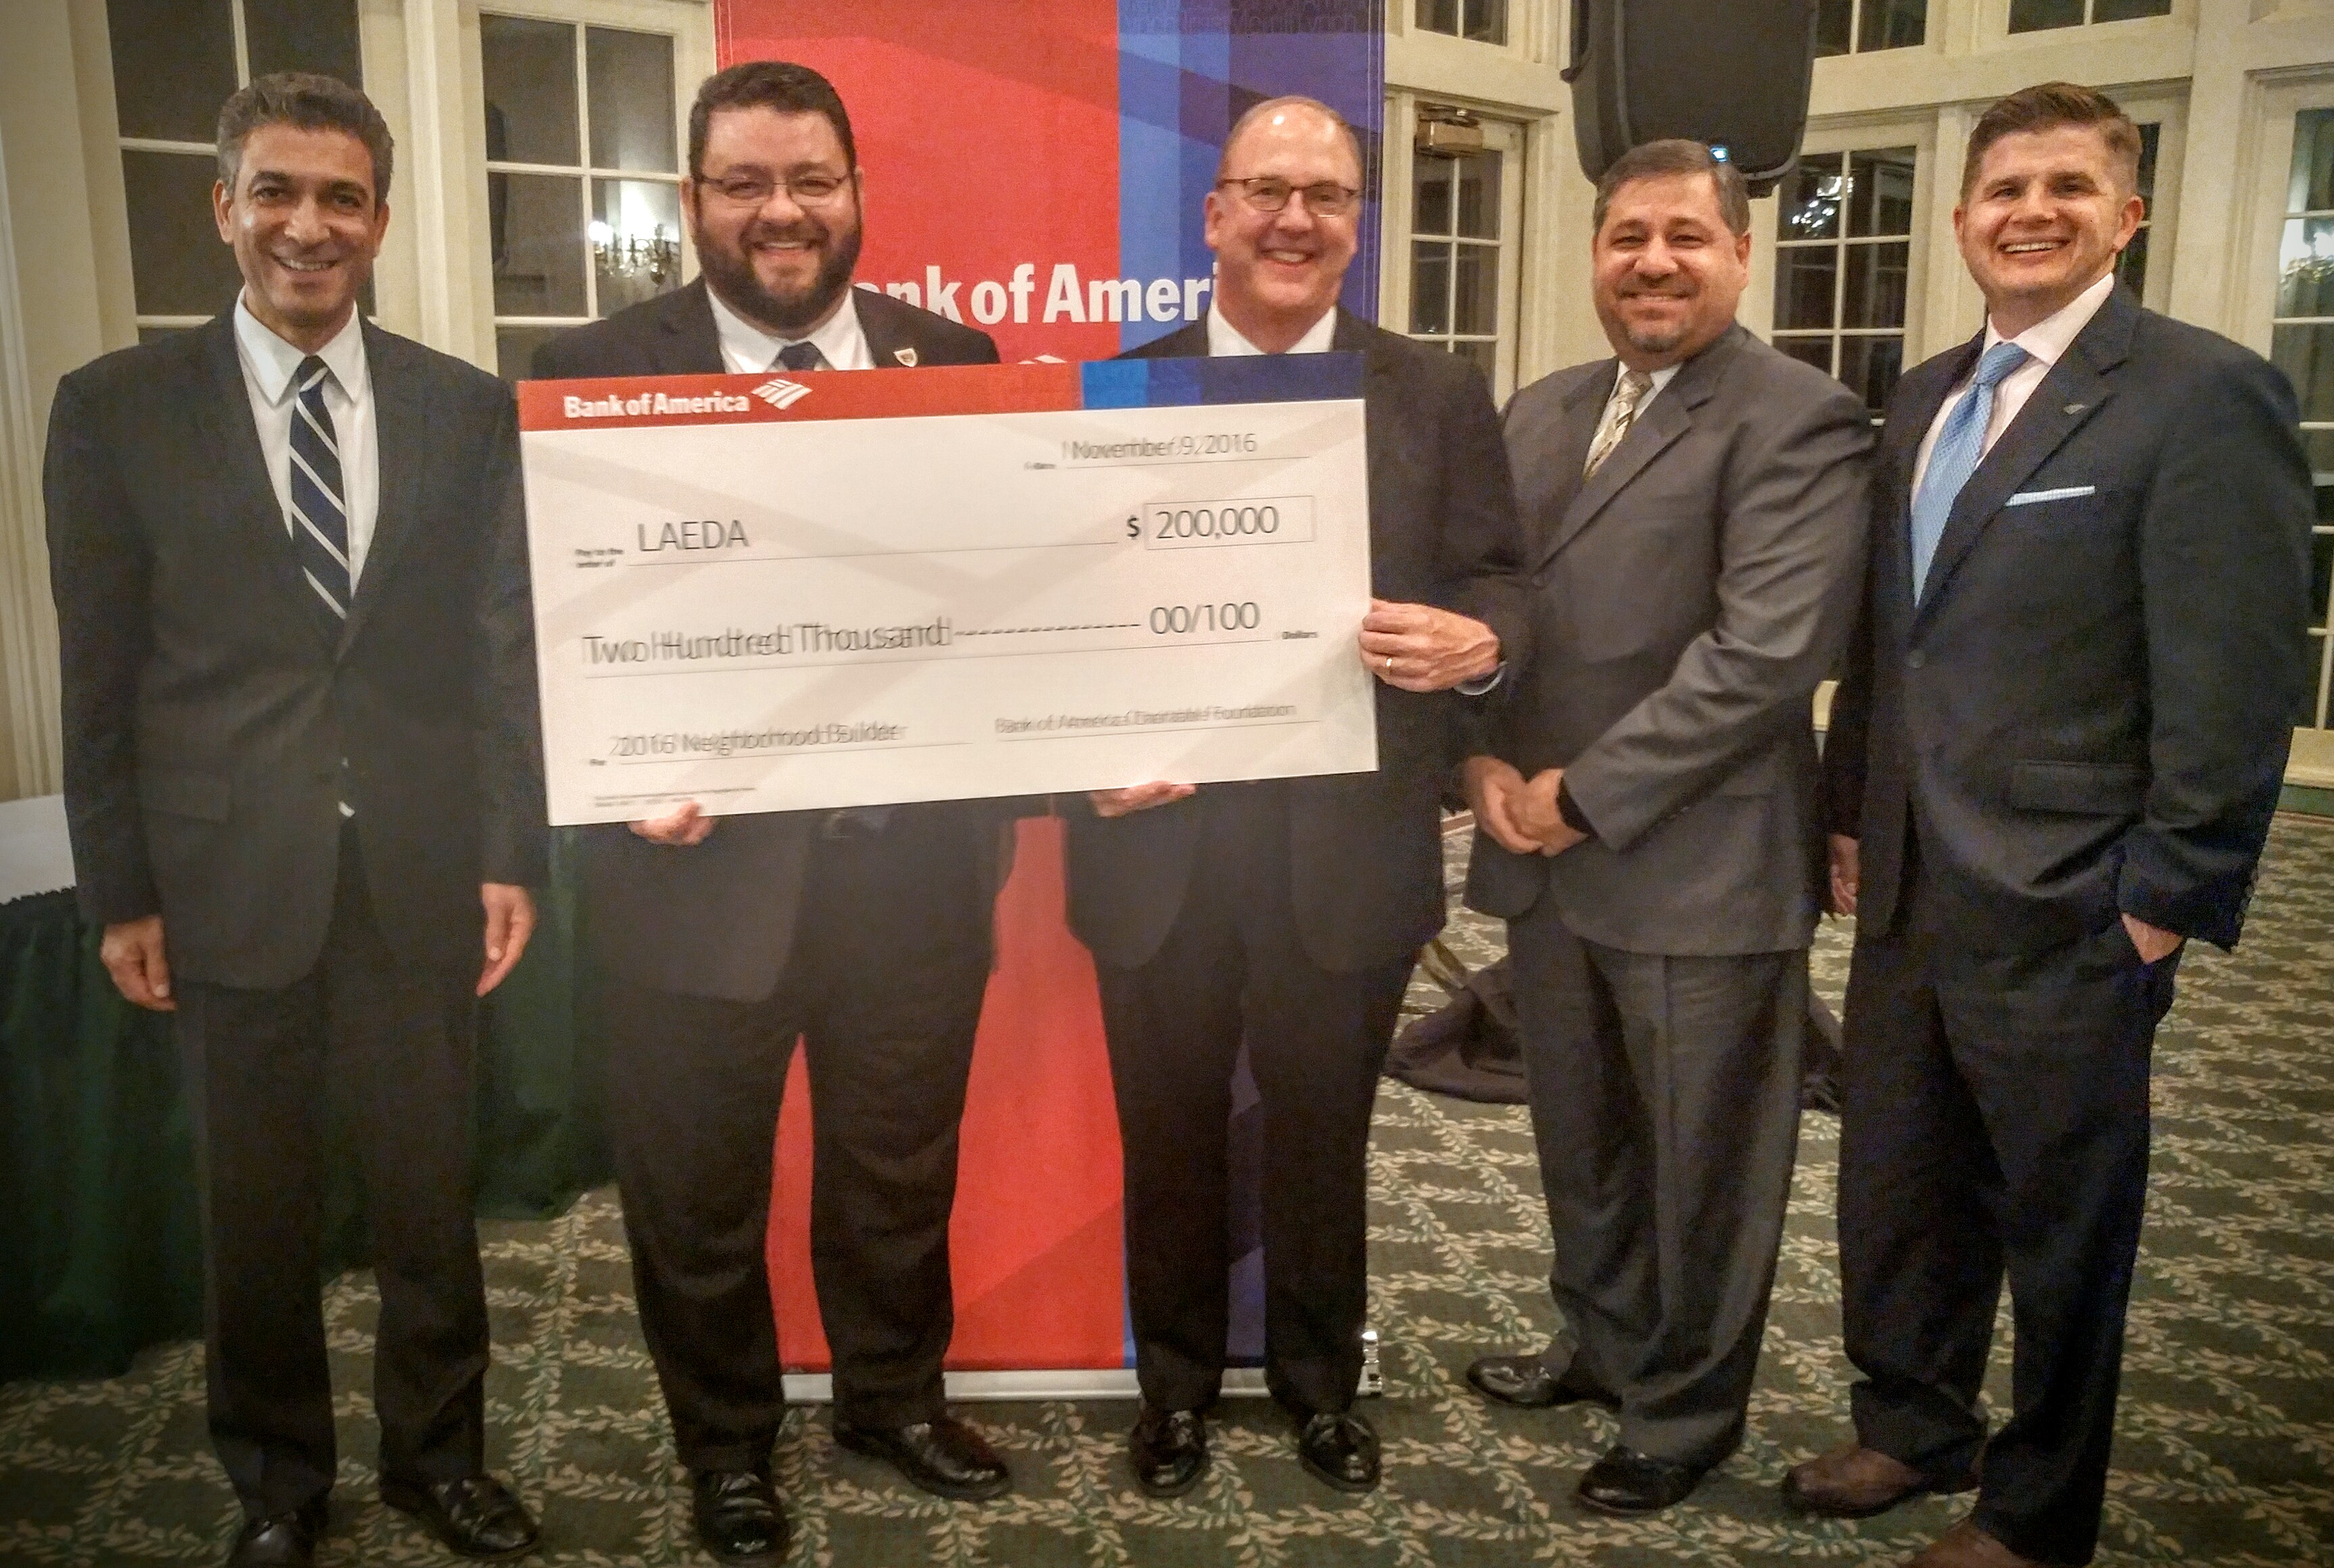 Bank of America Recognizes LAEDA with the 2016 Neighborhood Builders Award